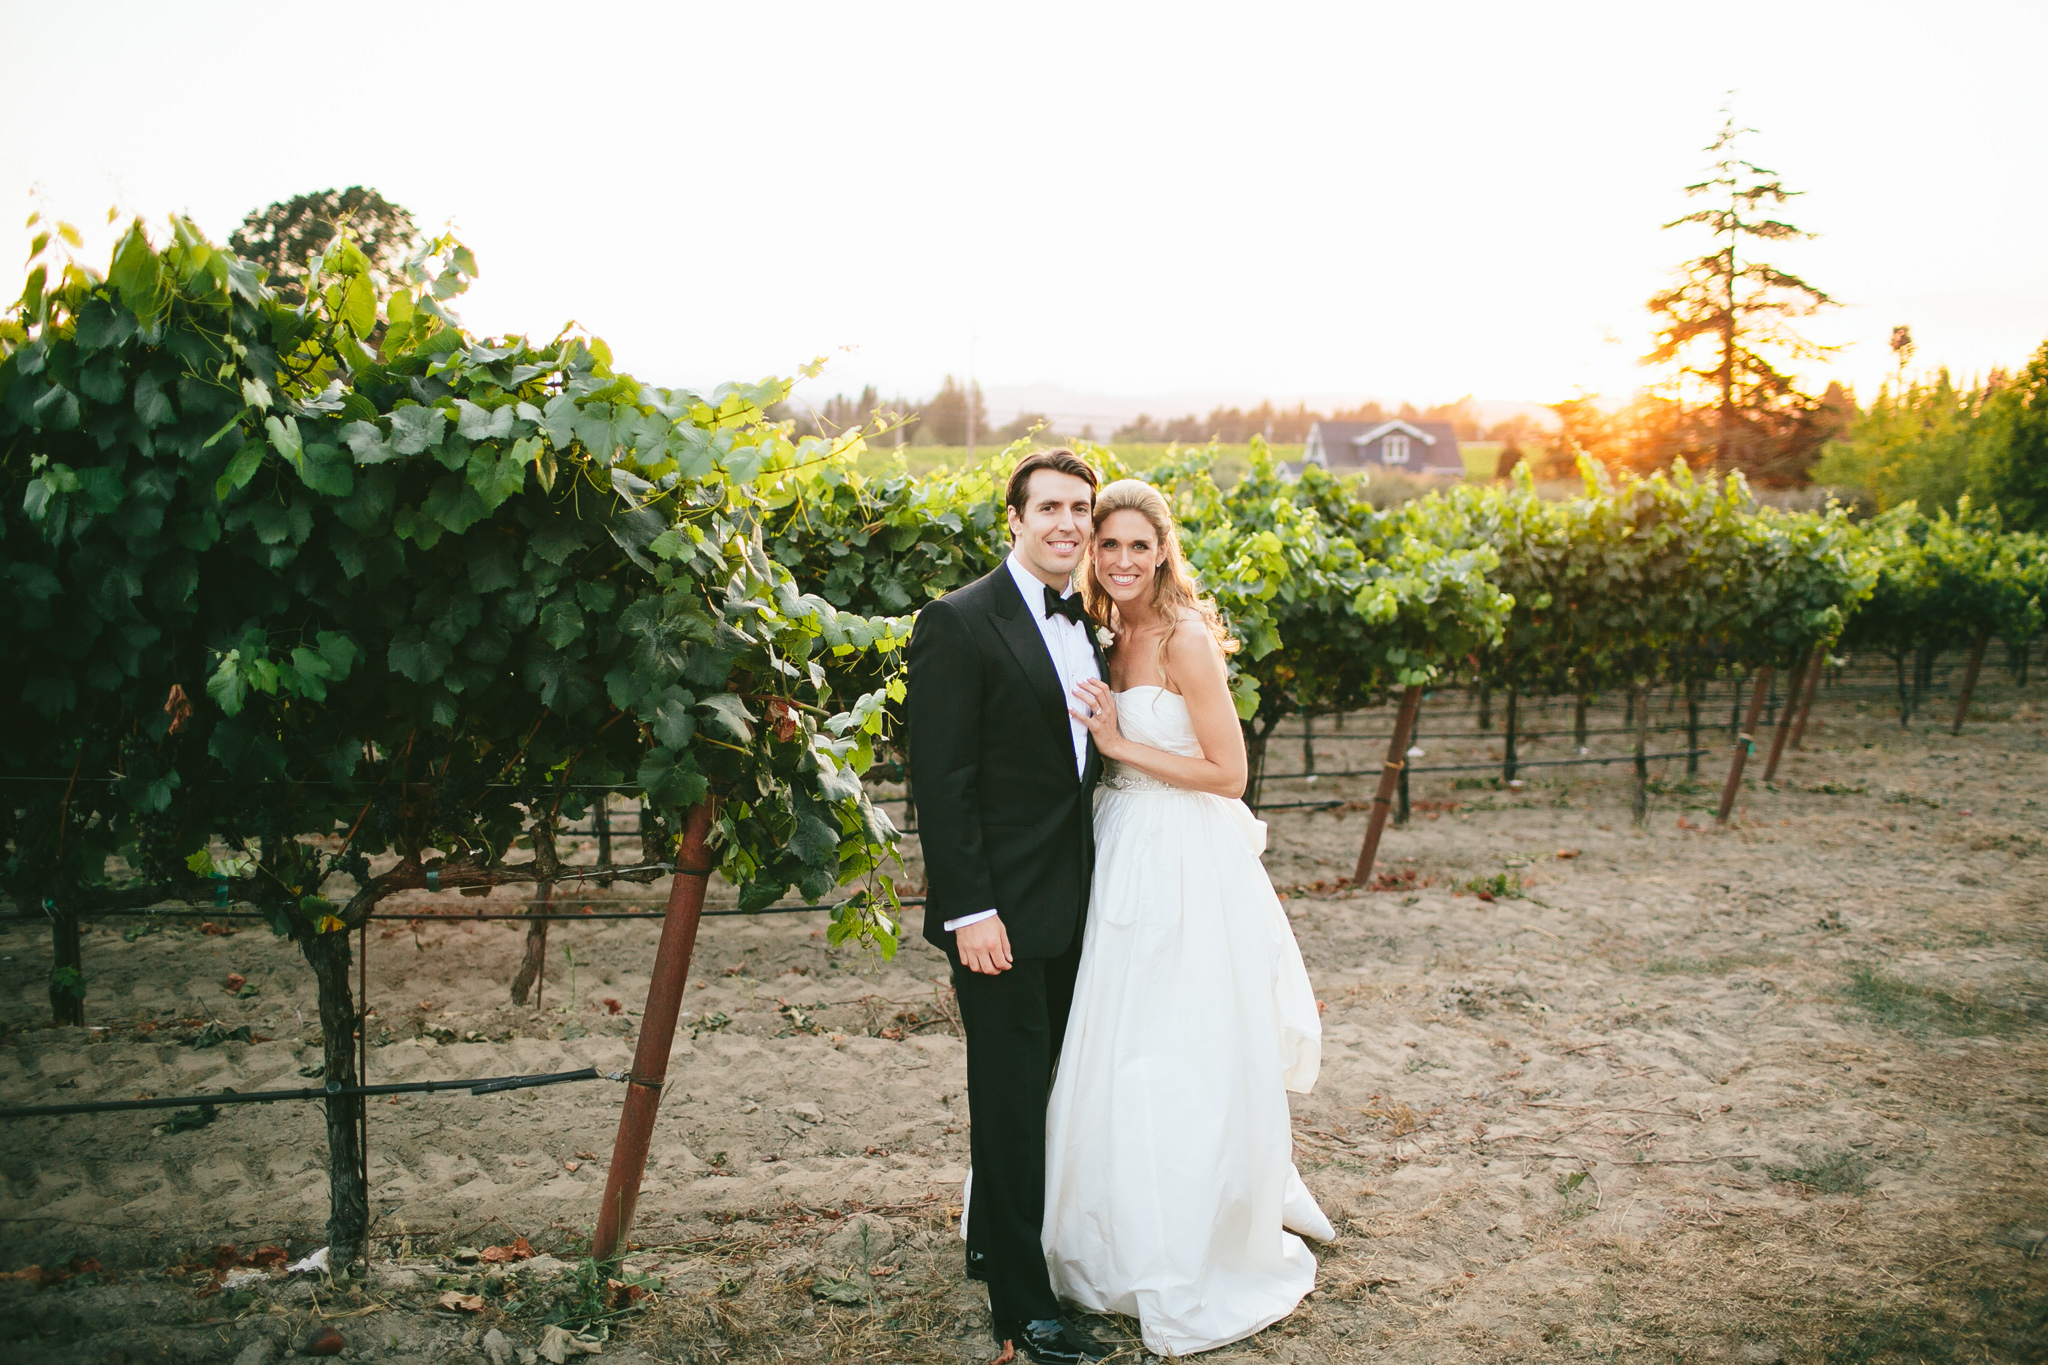 Emily+Nick-WED_BLOG-173